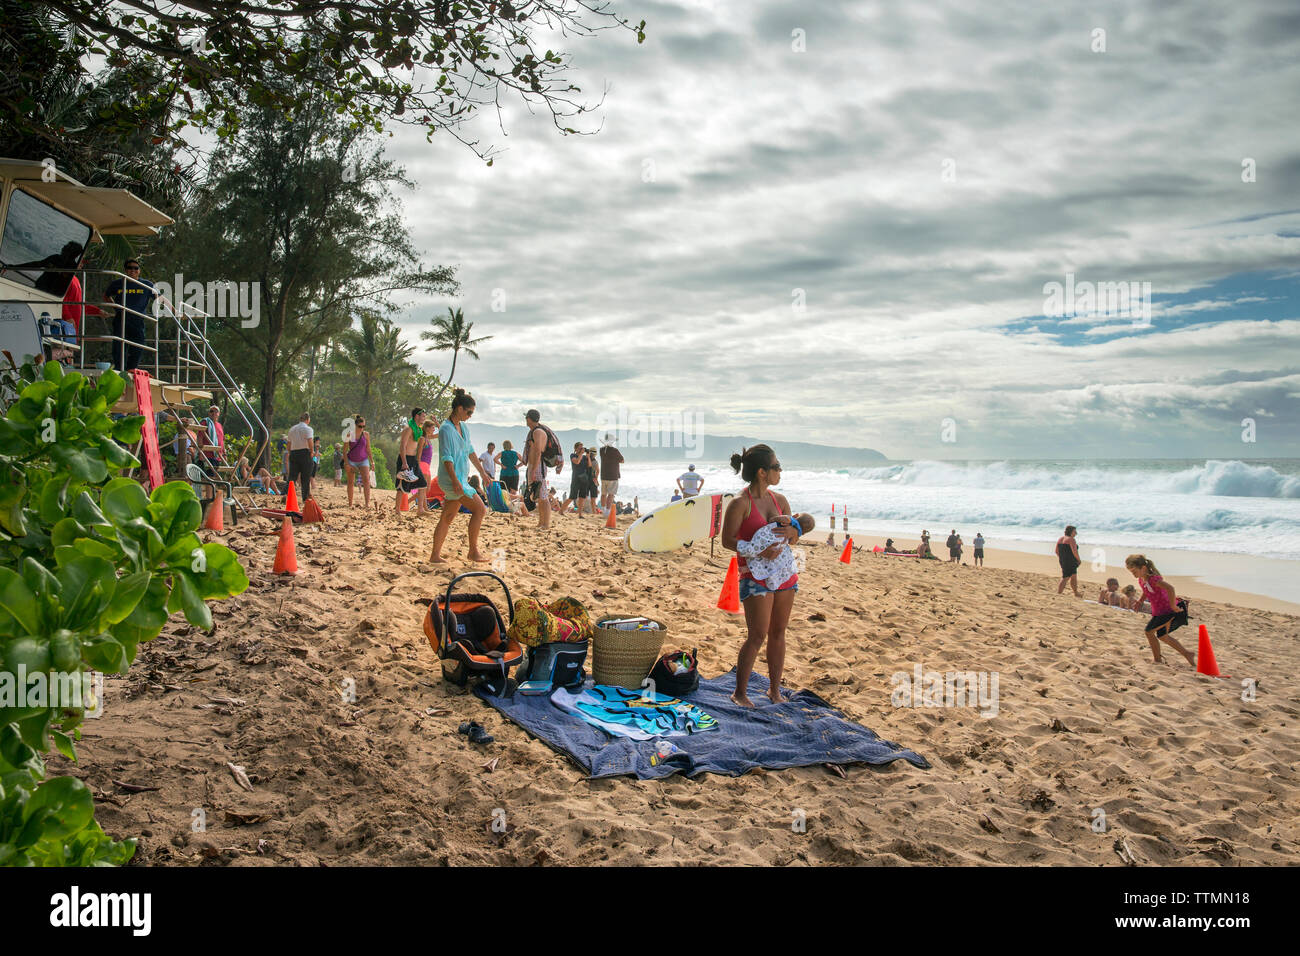 USA, HAWAII, Oahu, Northshore, families gather on the beach at Pipeline - Stock Image